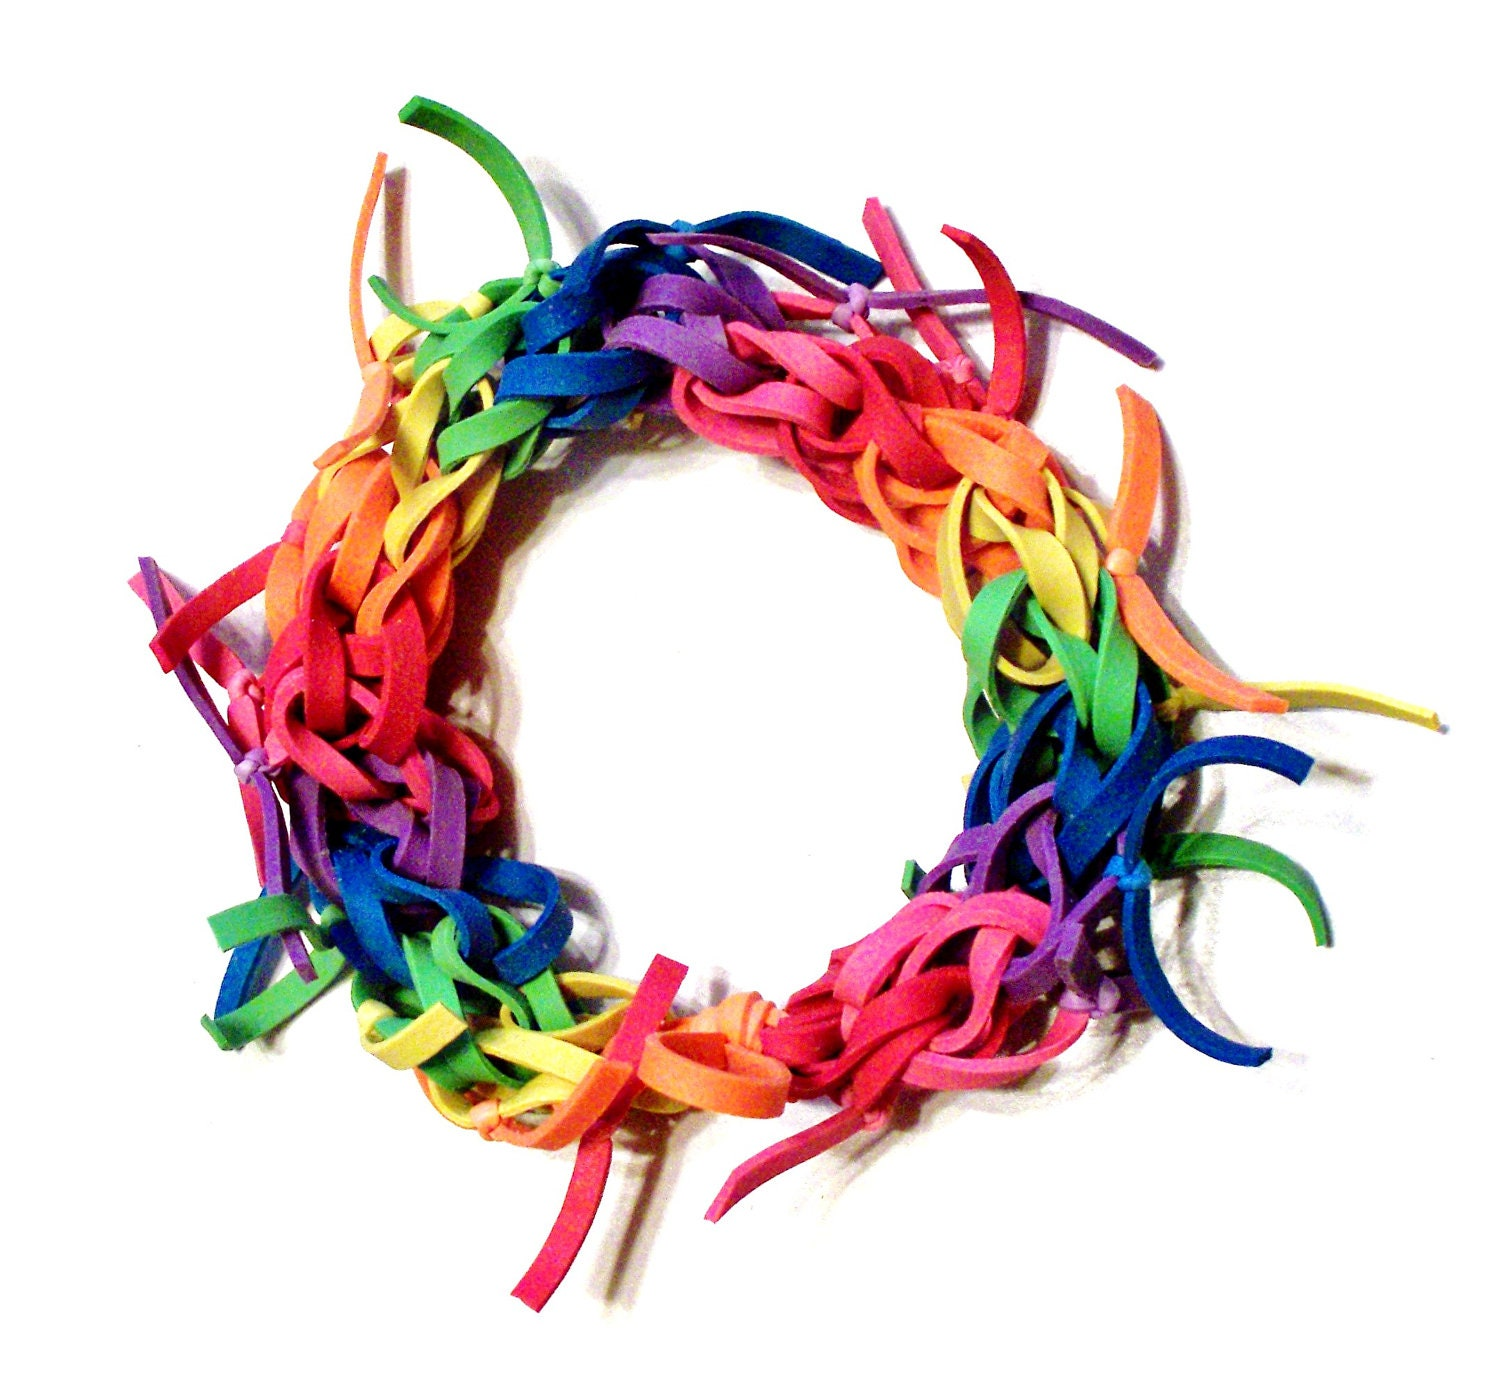 Rainbow Rubber Band Bracelet Frayed Support Gay by BungleBands